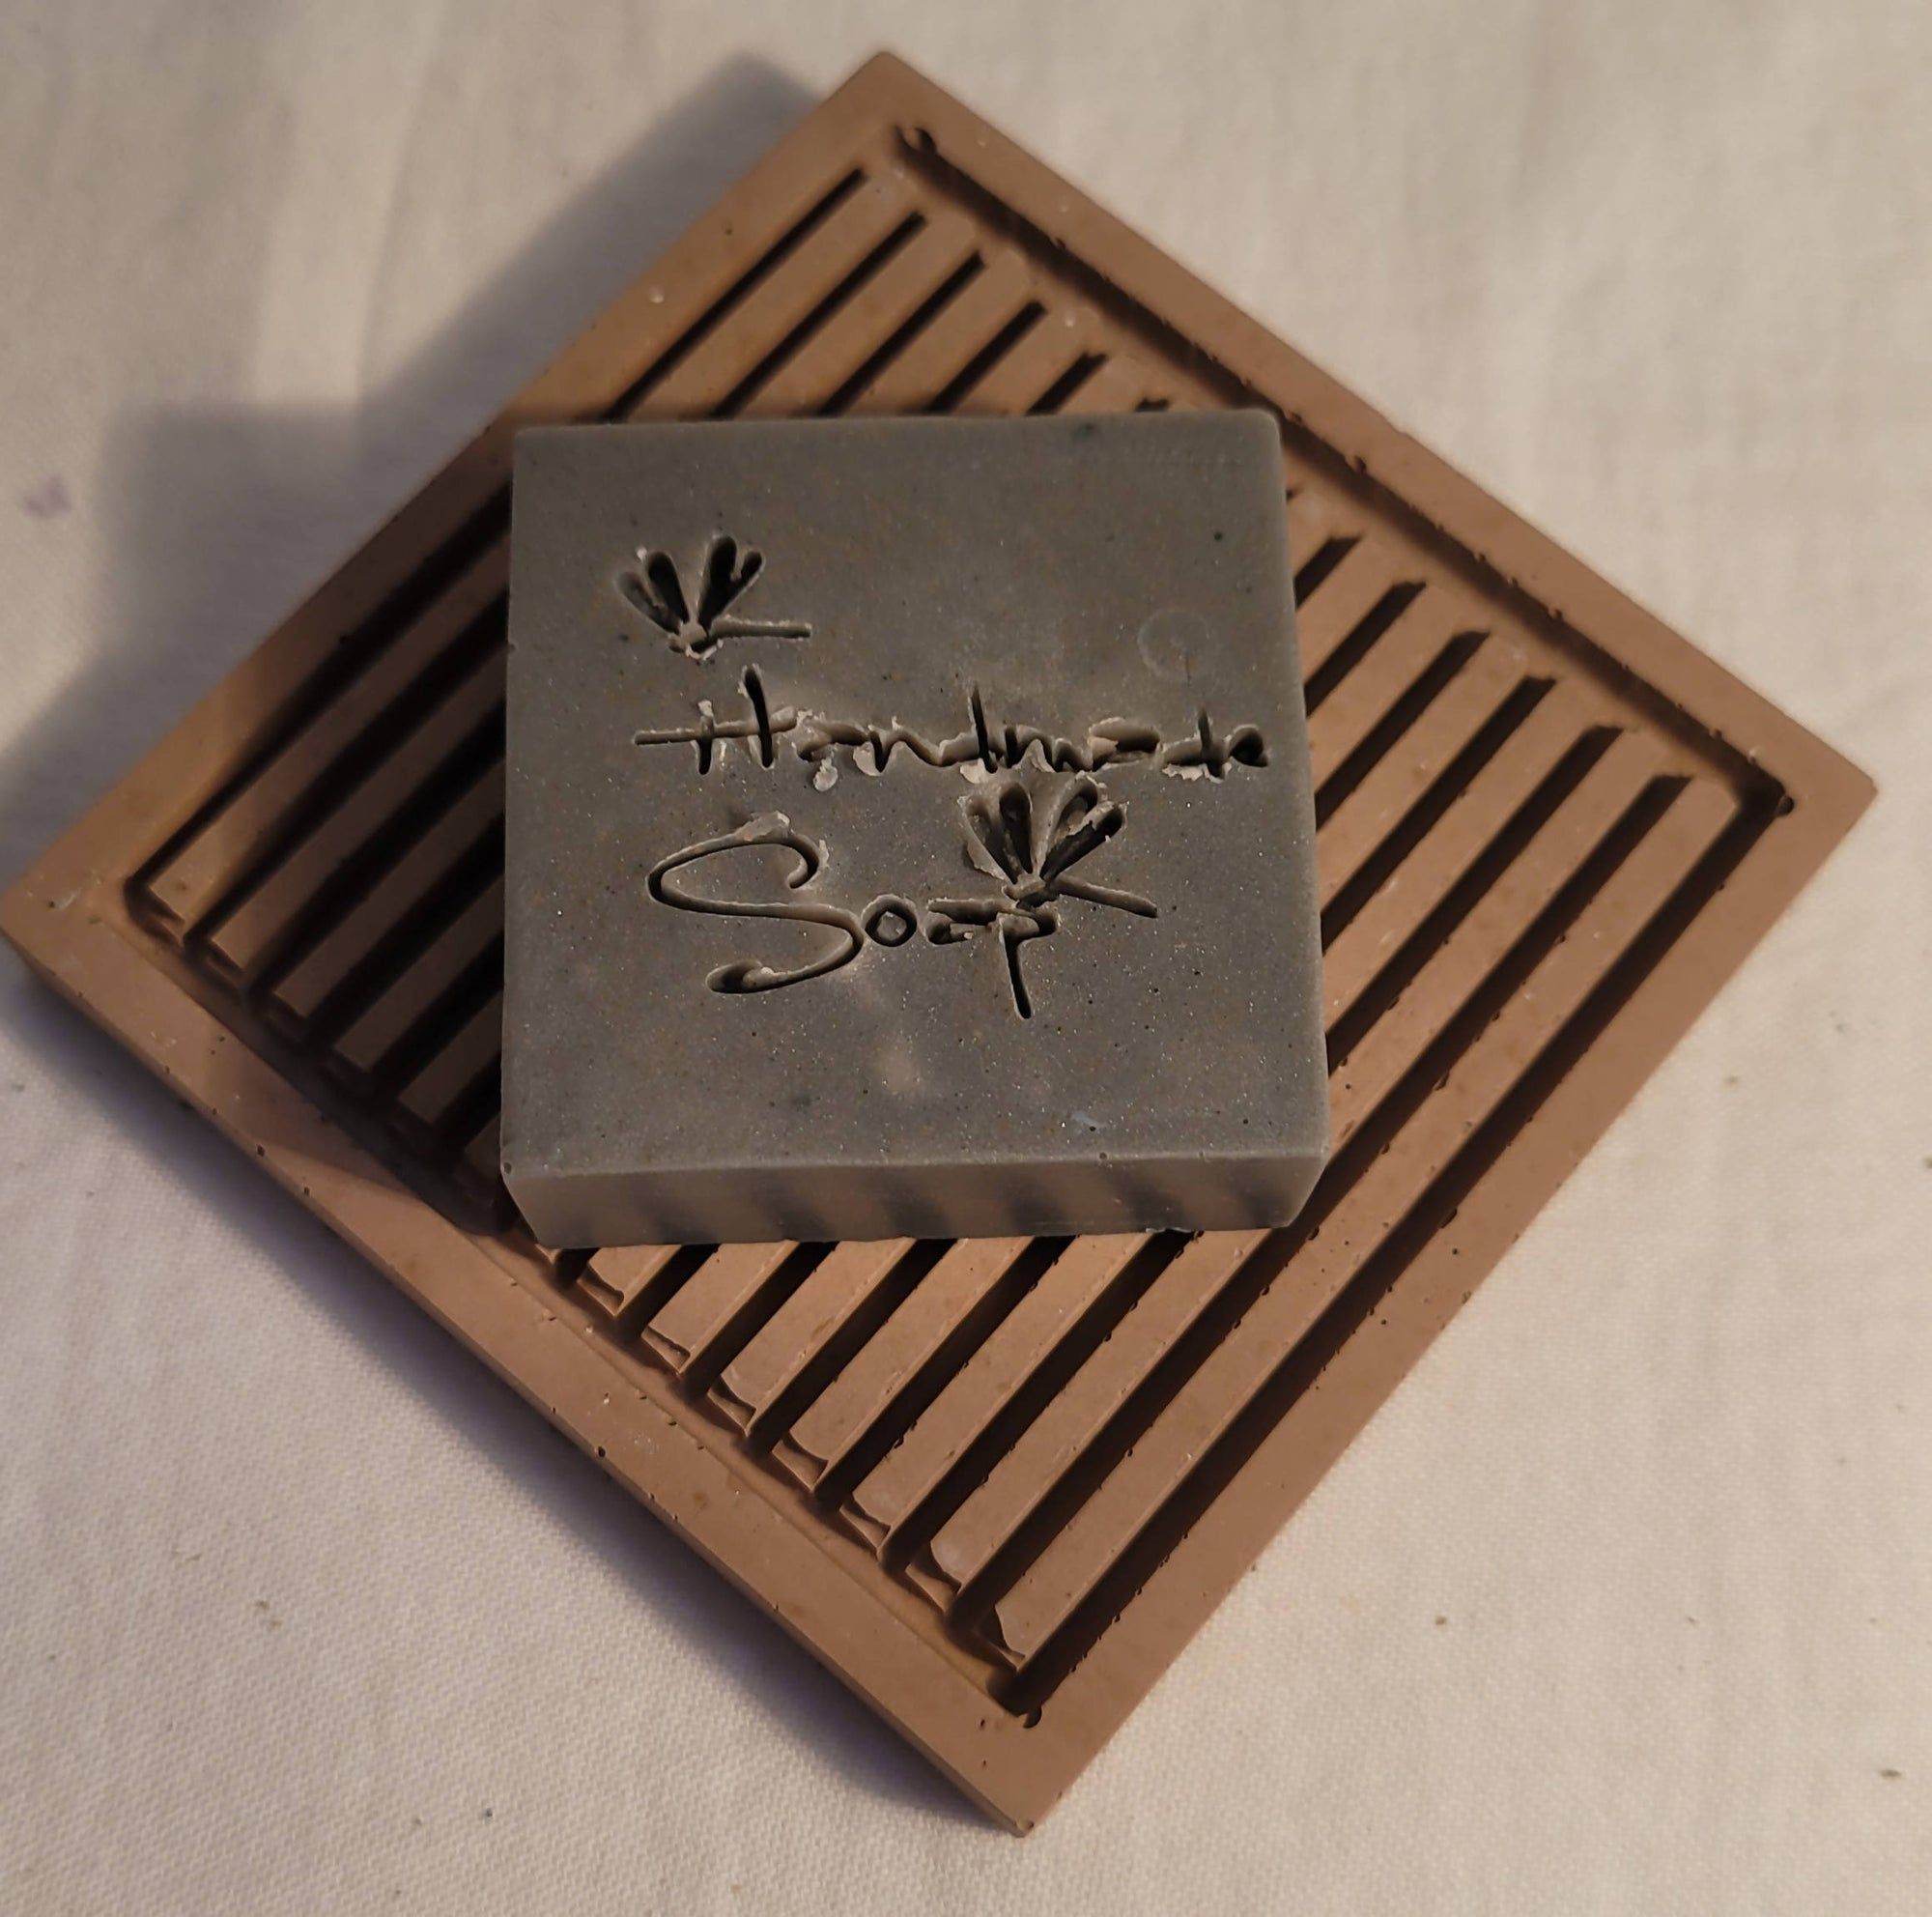 Relief - Handmade soap saver cement soap dish square